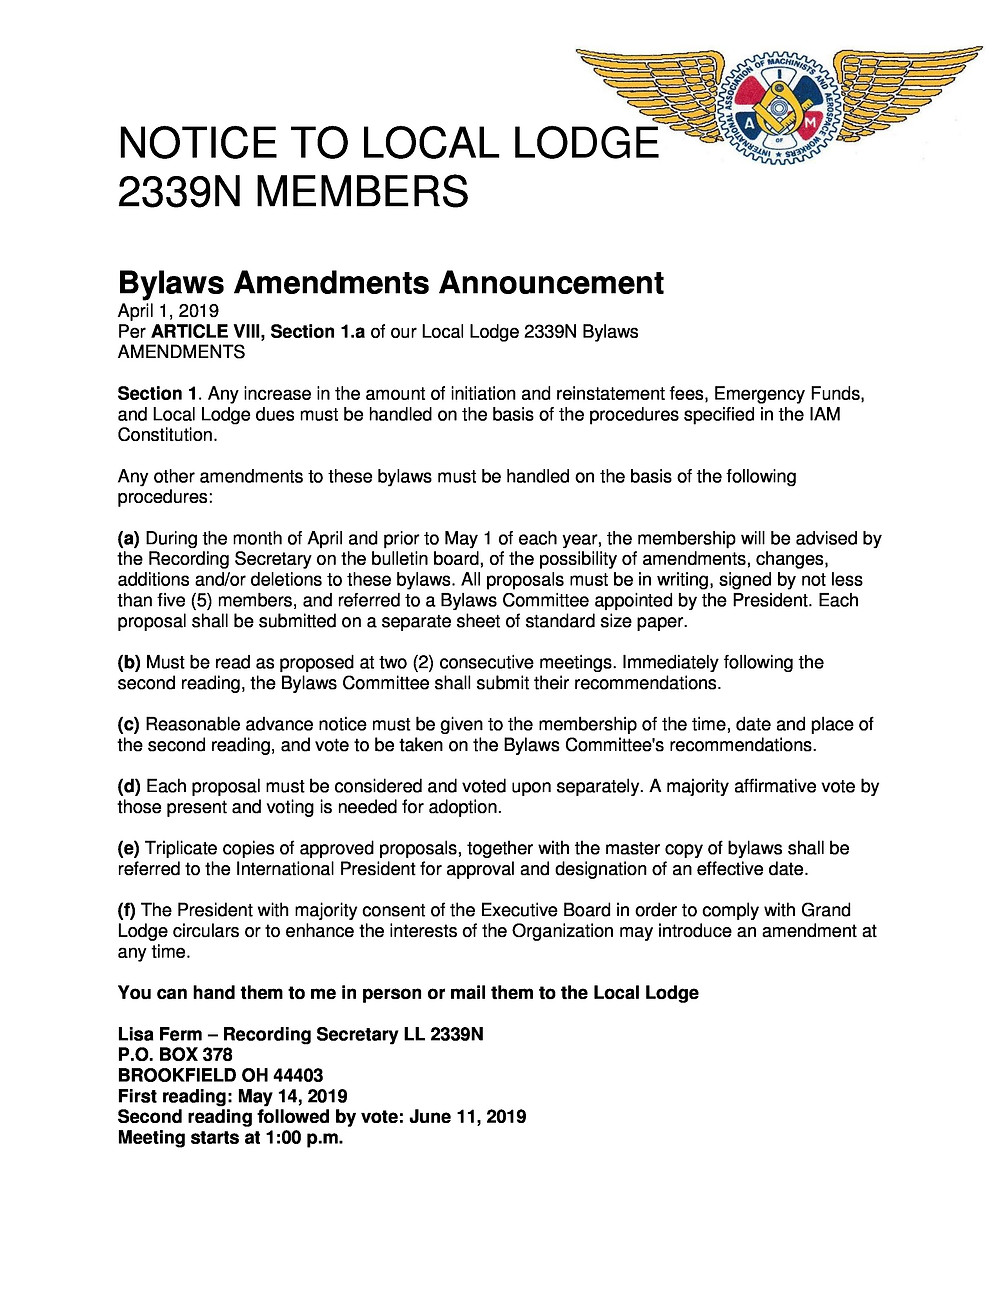 Amendments to Bylaws Announcement